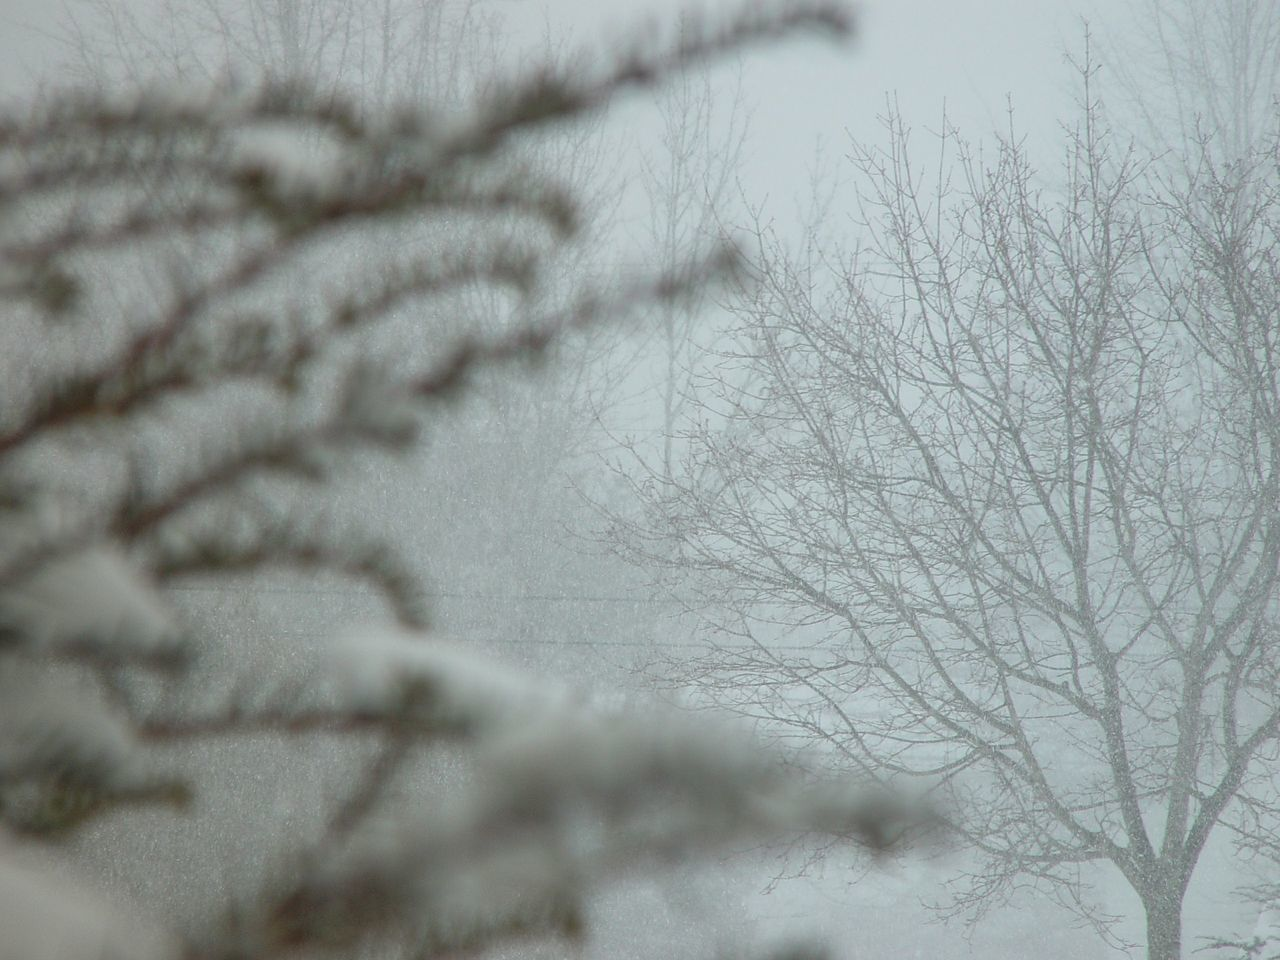 winter, bare tree, cold temperature, close-up, nature, day, no people, indoors, snow, beauty in nature, tree